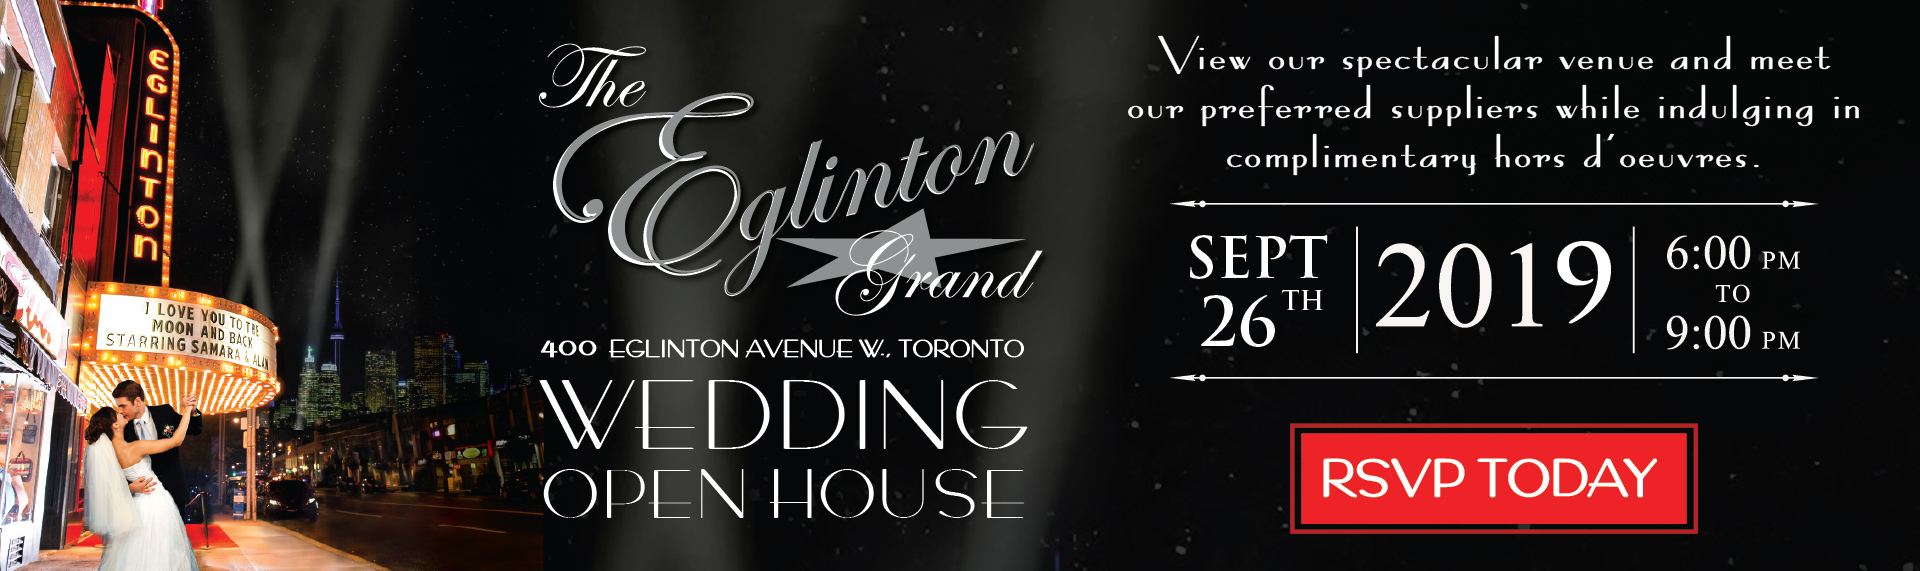 Toronto Wedding Open House Event Venue Hall Theatre Ballroom Reception Bridal Shower Ceremony